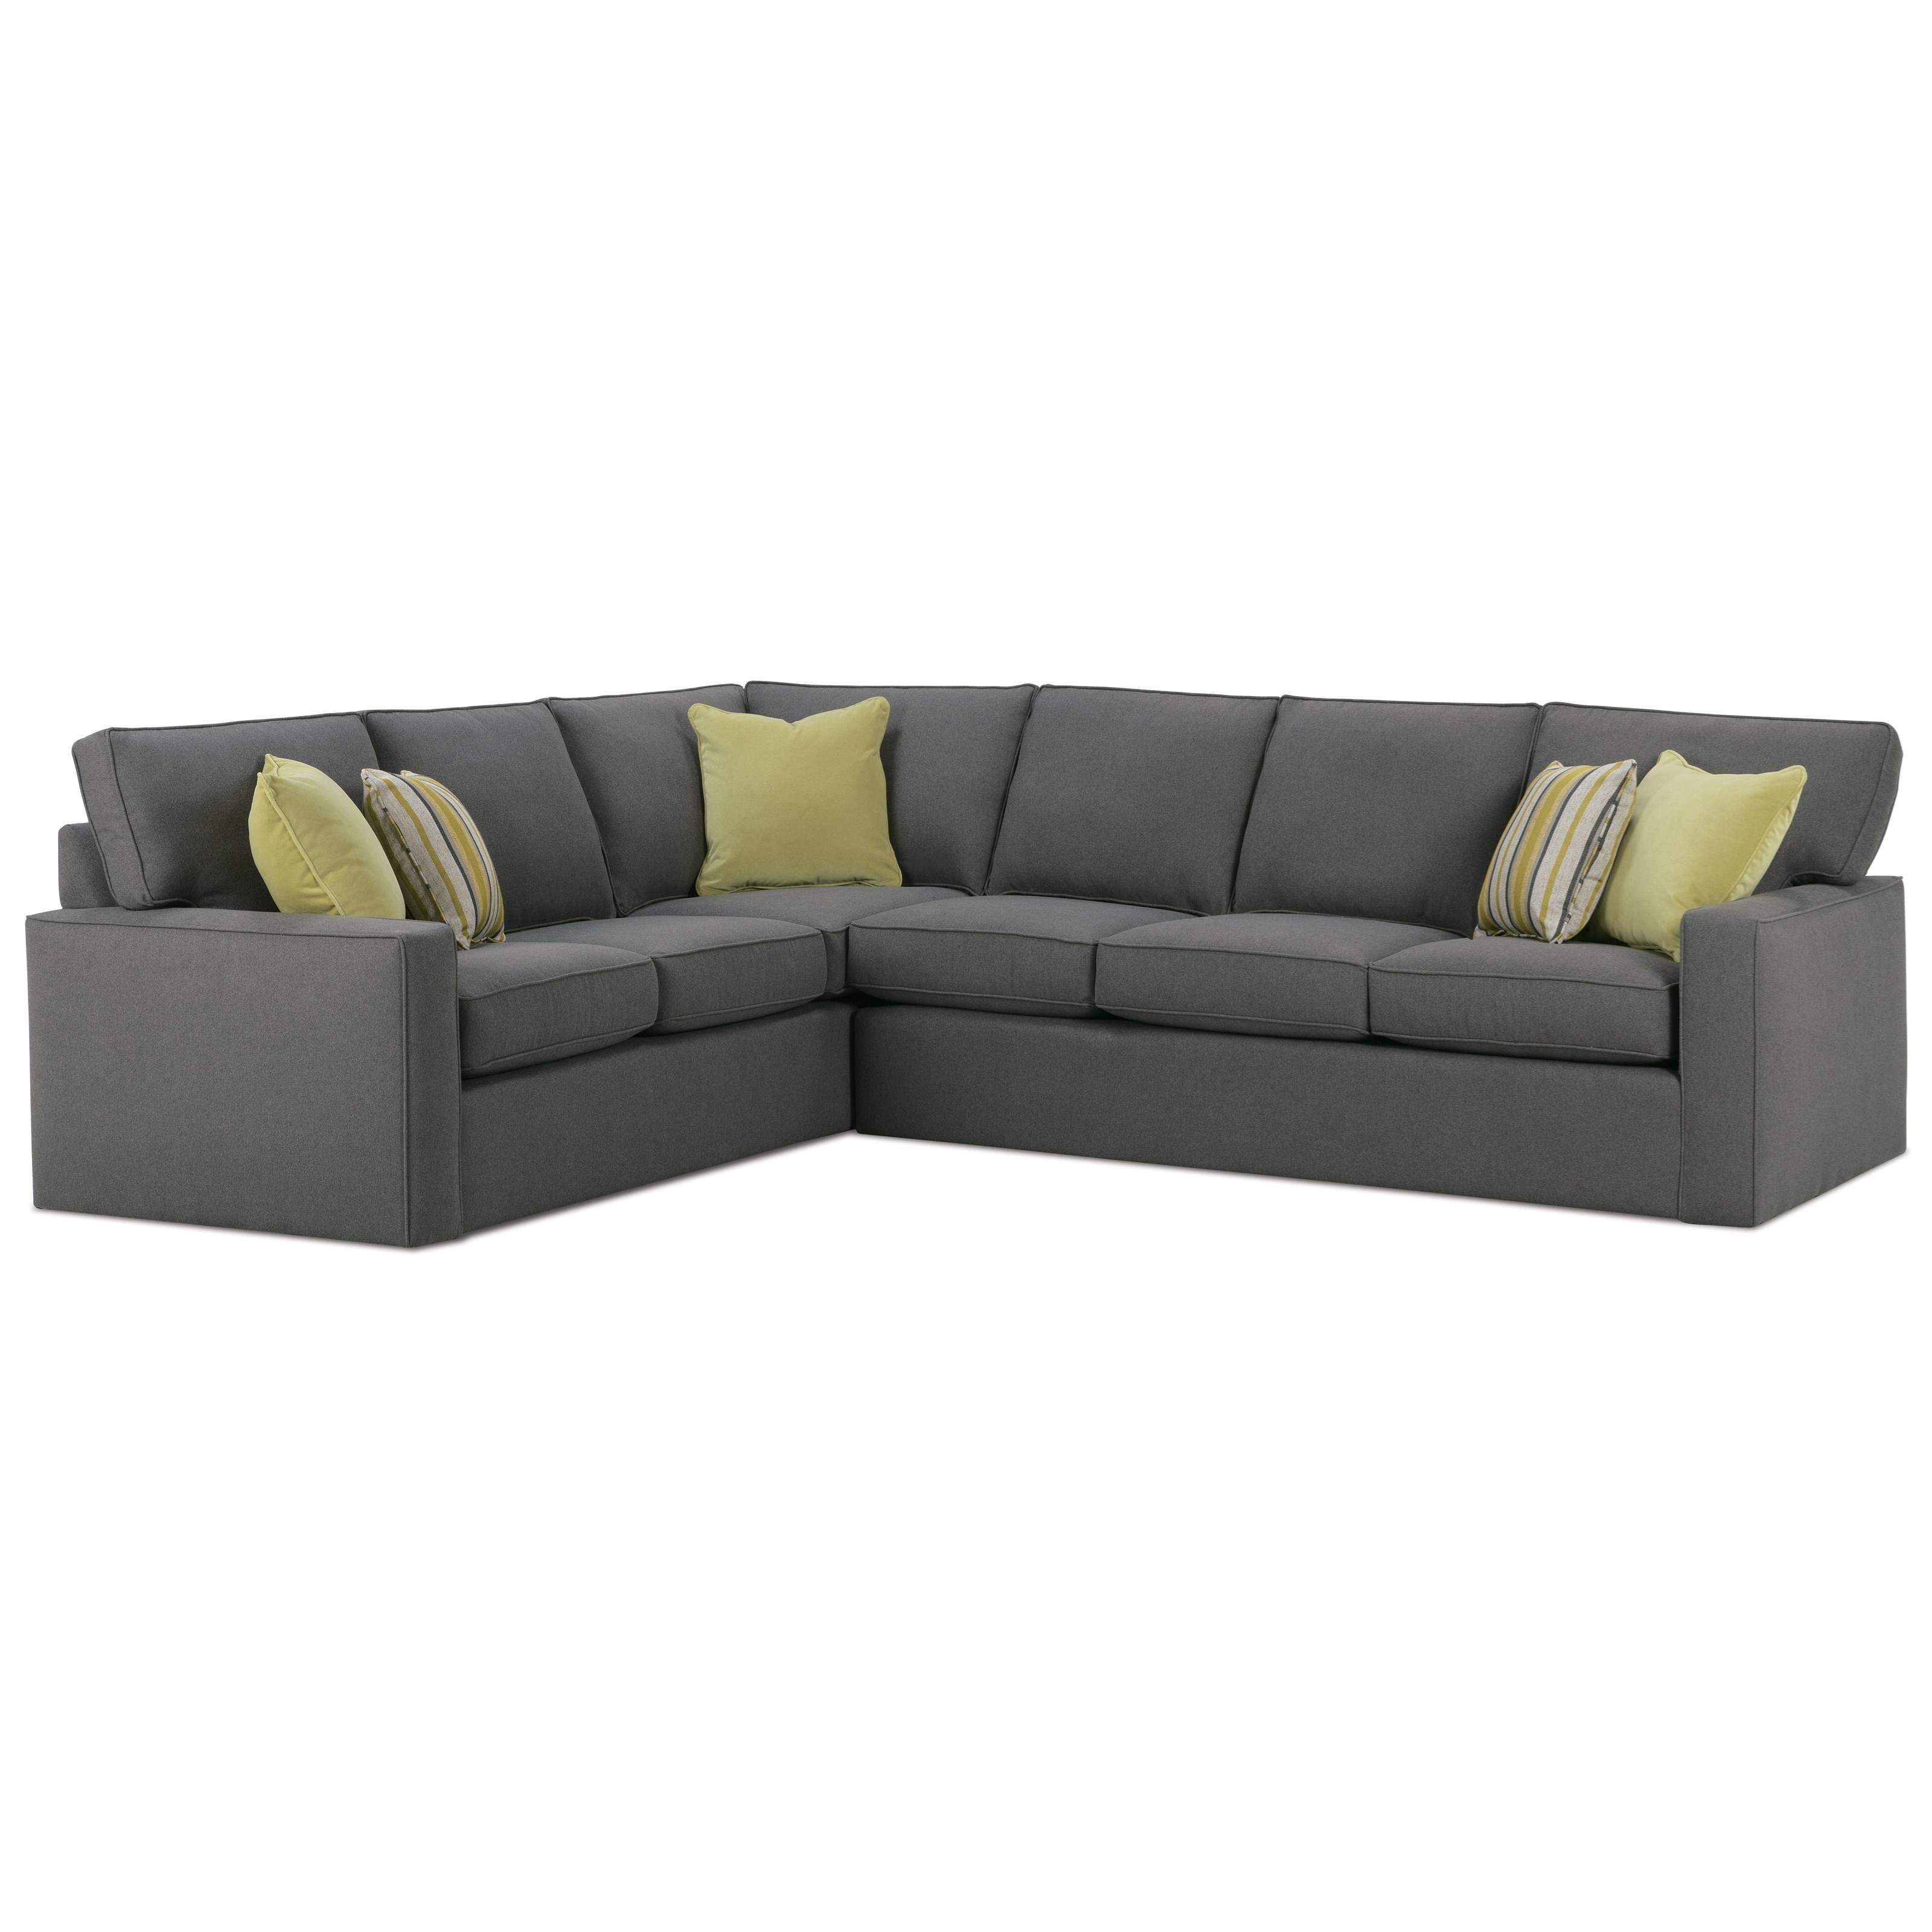 jamestown 2 piece sofa and loveseat group in gray clayton s sofas lincoln rowe monaco corner sectional ahfa